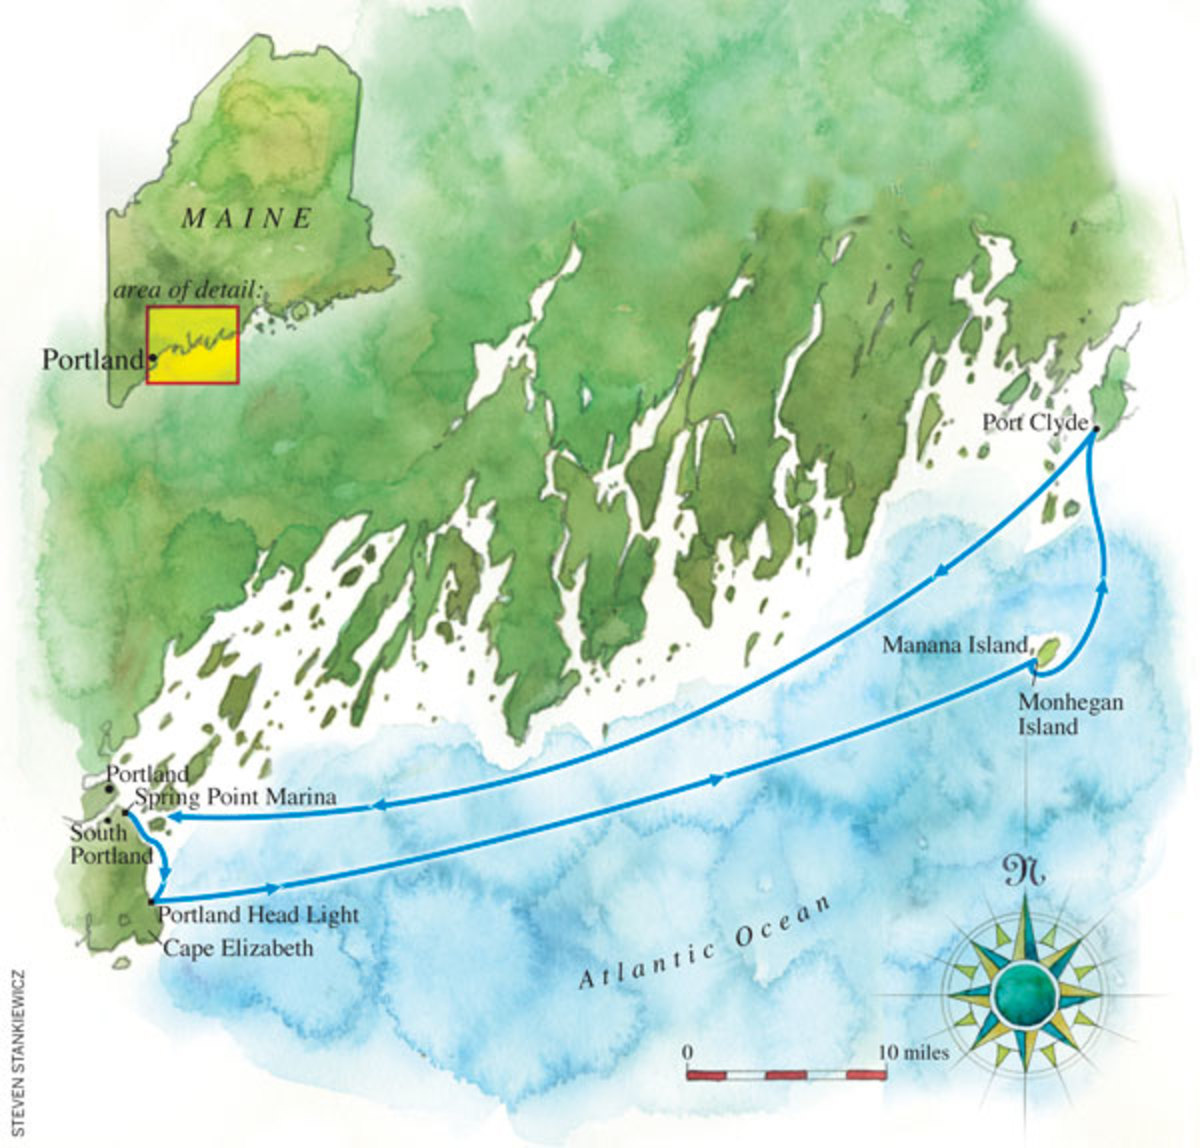 Map of route to Monhegan Island